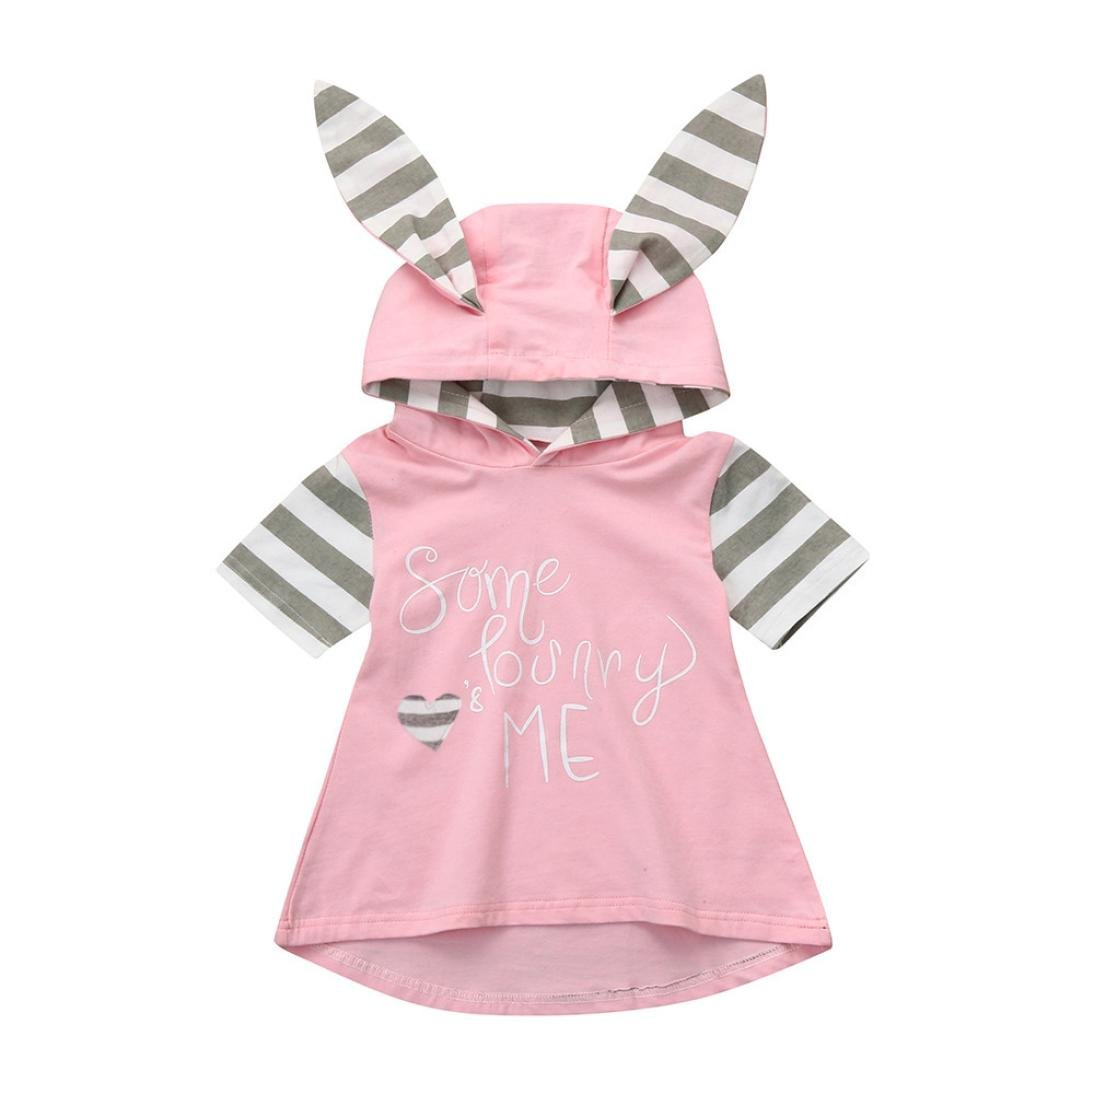 G-real Toddler Baby Girls Cute Easter Rabbit Ear Hooded Dress Letter Heart Print Playwear Dress for 6M-3T